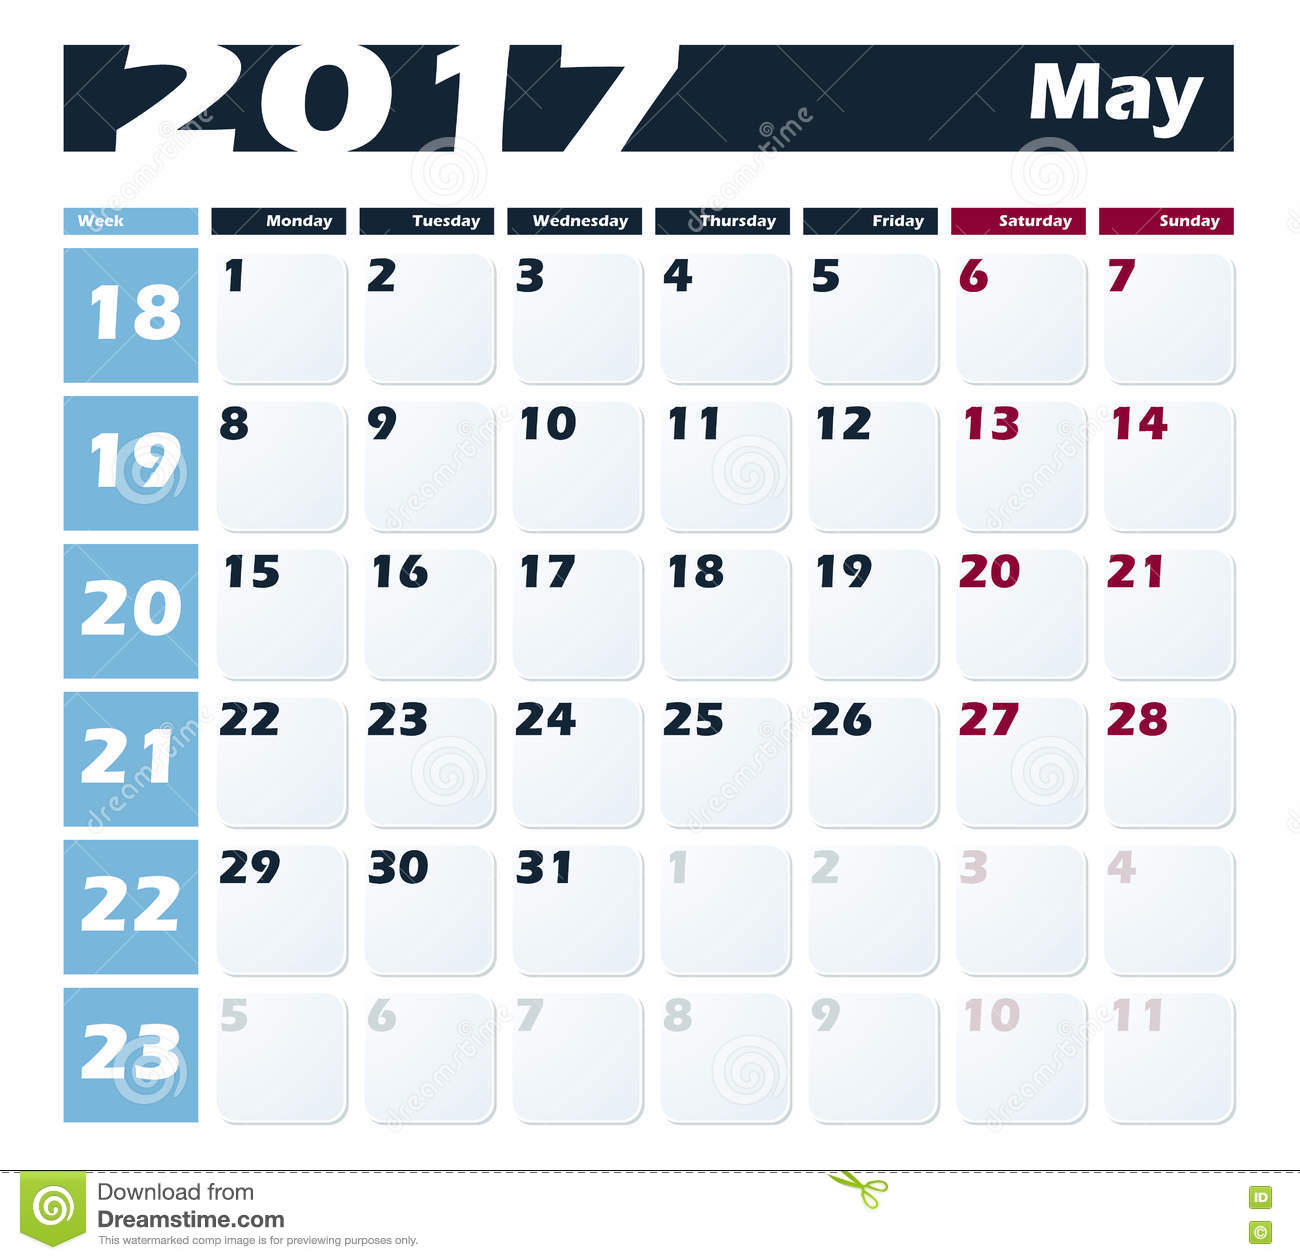 Xs Calendar May : Calendar may vector design template week starts with